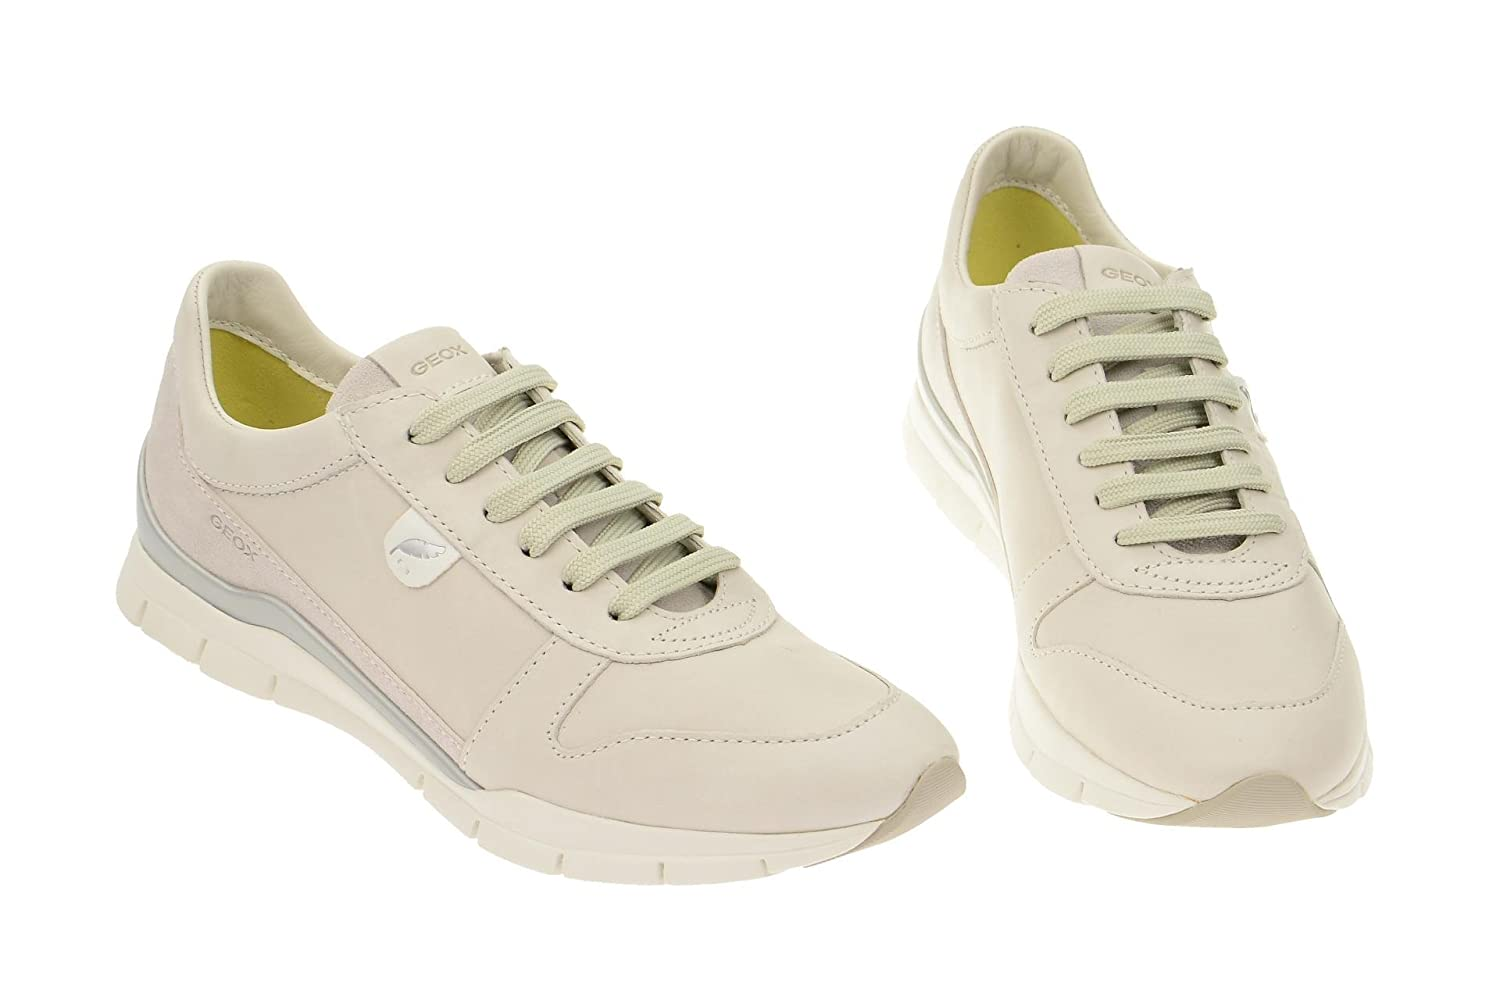 Geox Respira da Donna Sneakers, Bianco: Amazon.it: Scarpe e